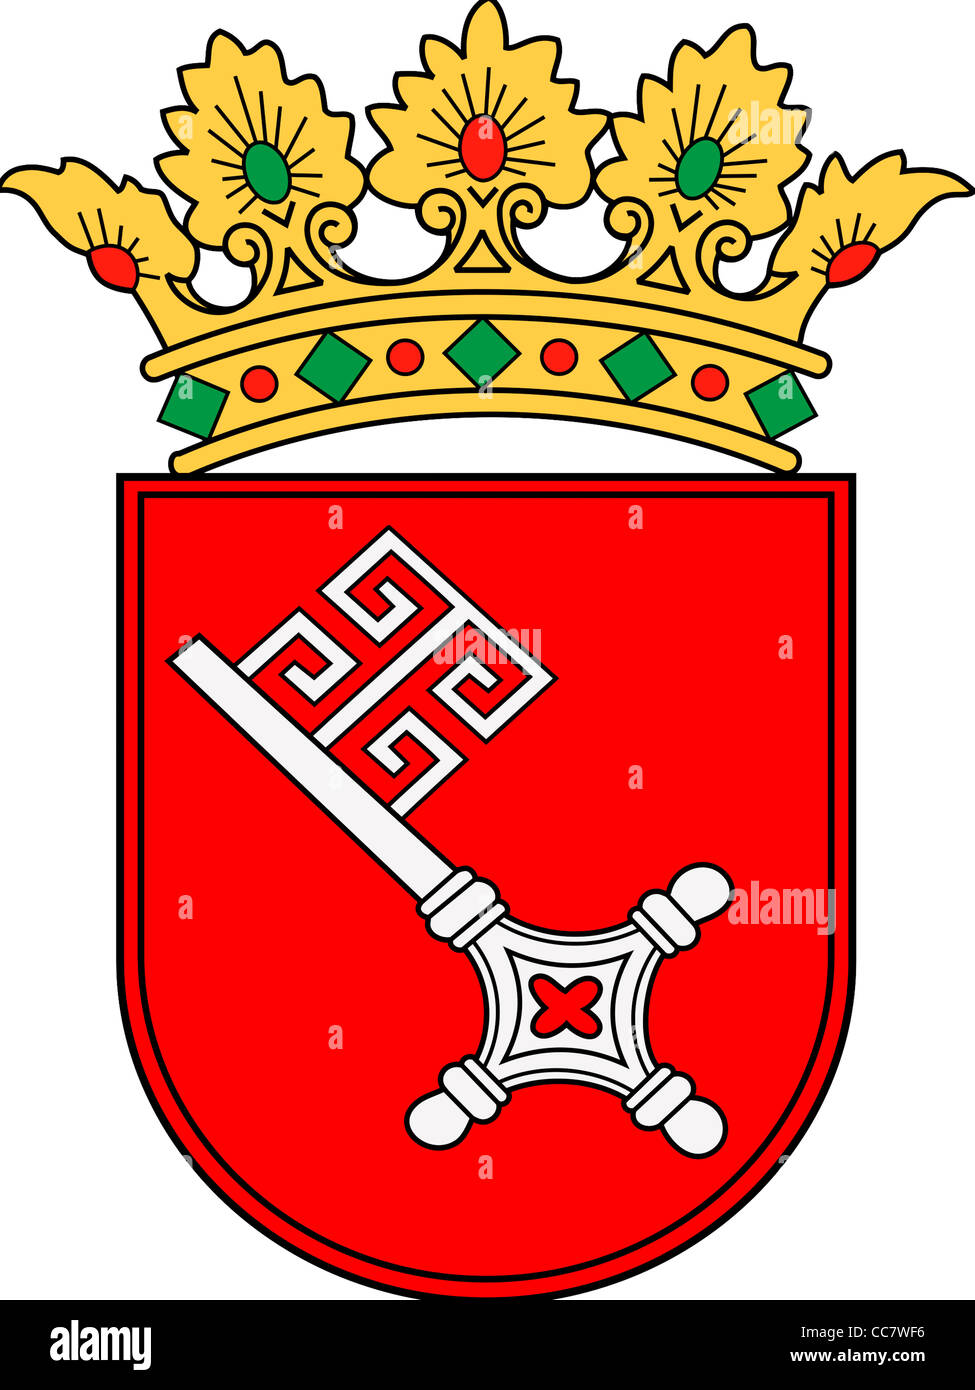 Coat of arms of the Hanseatic town Bremen. - Stock Image